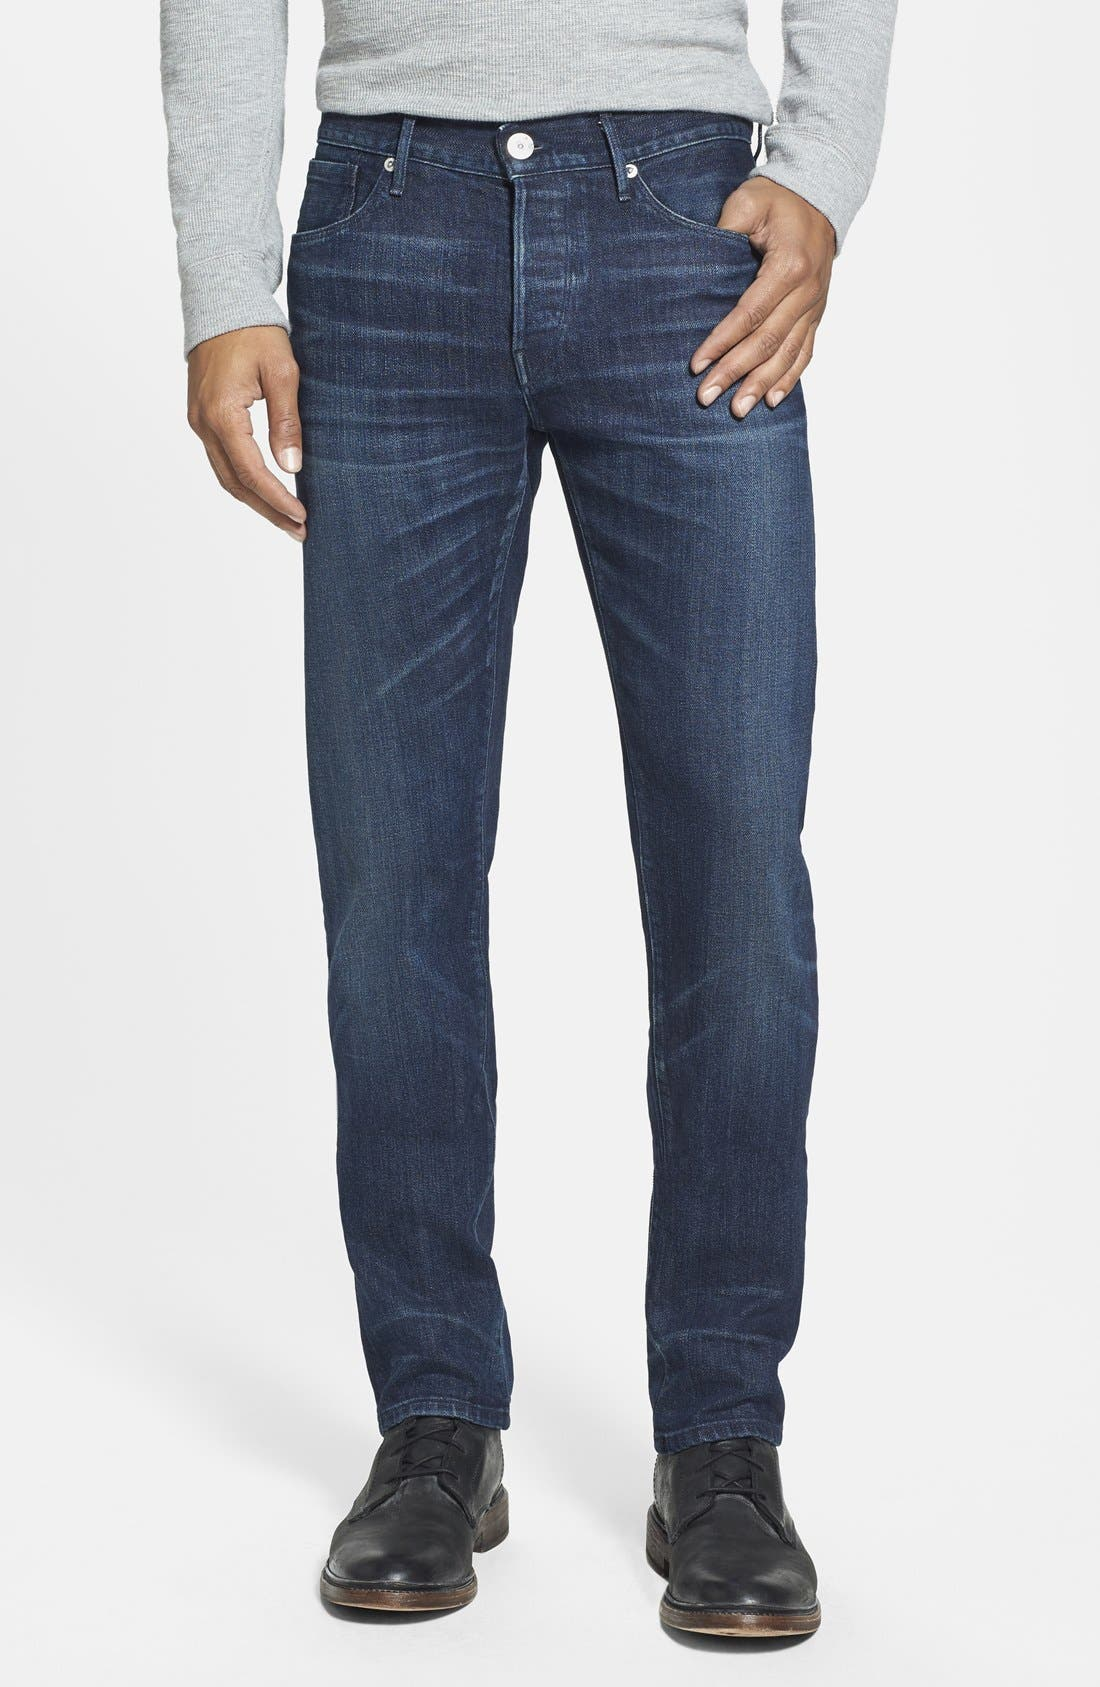 3x1 NYC 'M3' Slim Fit Selvedge Jeans (Woodlands)